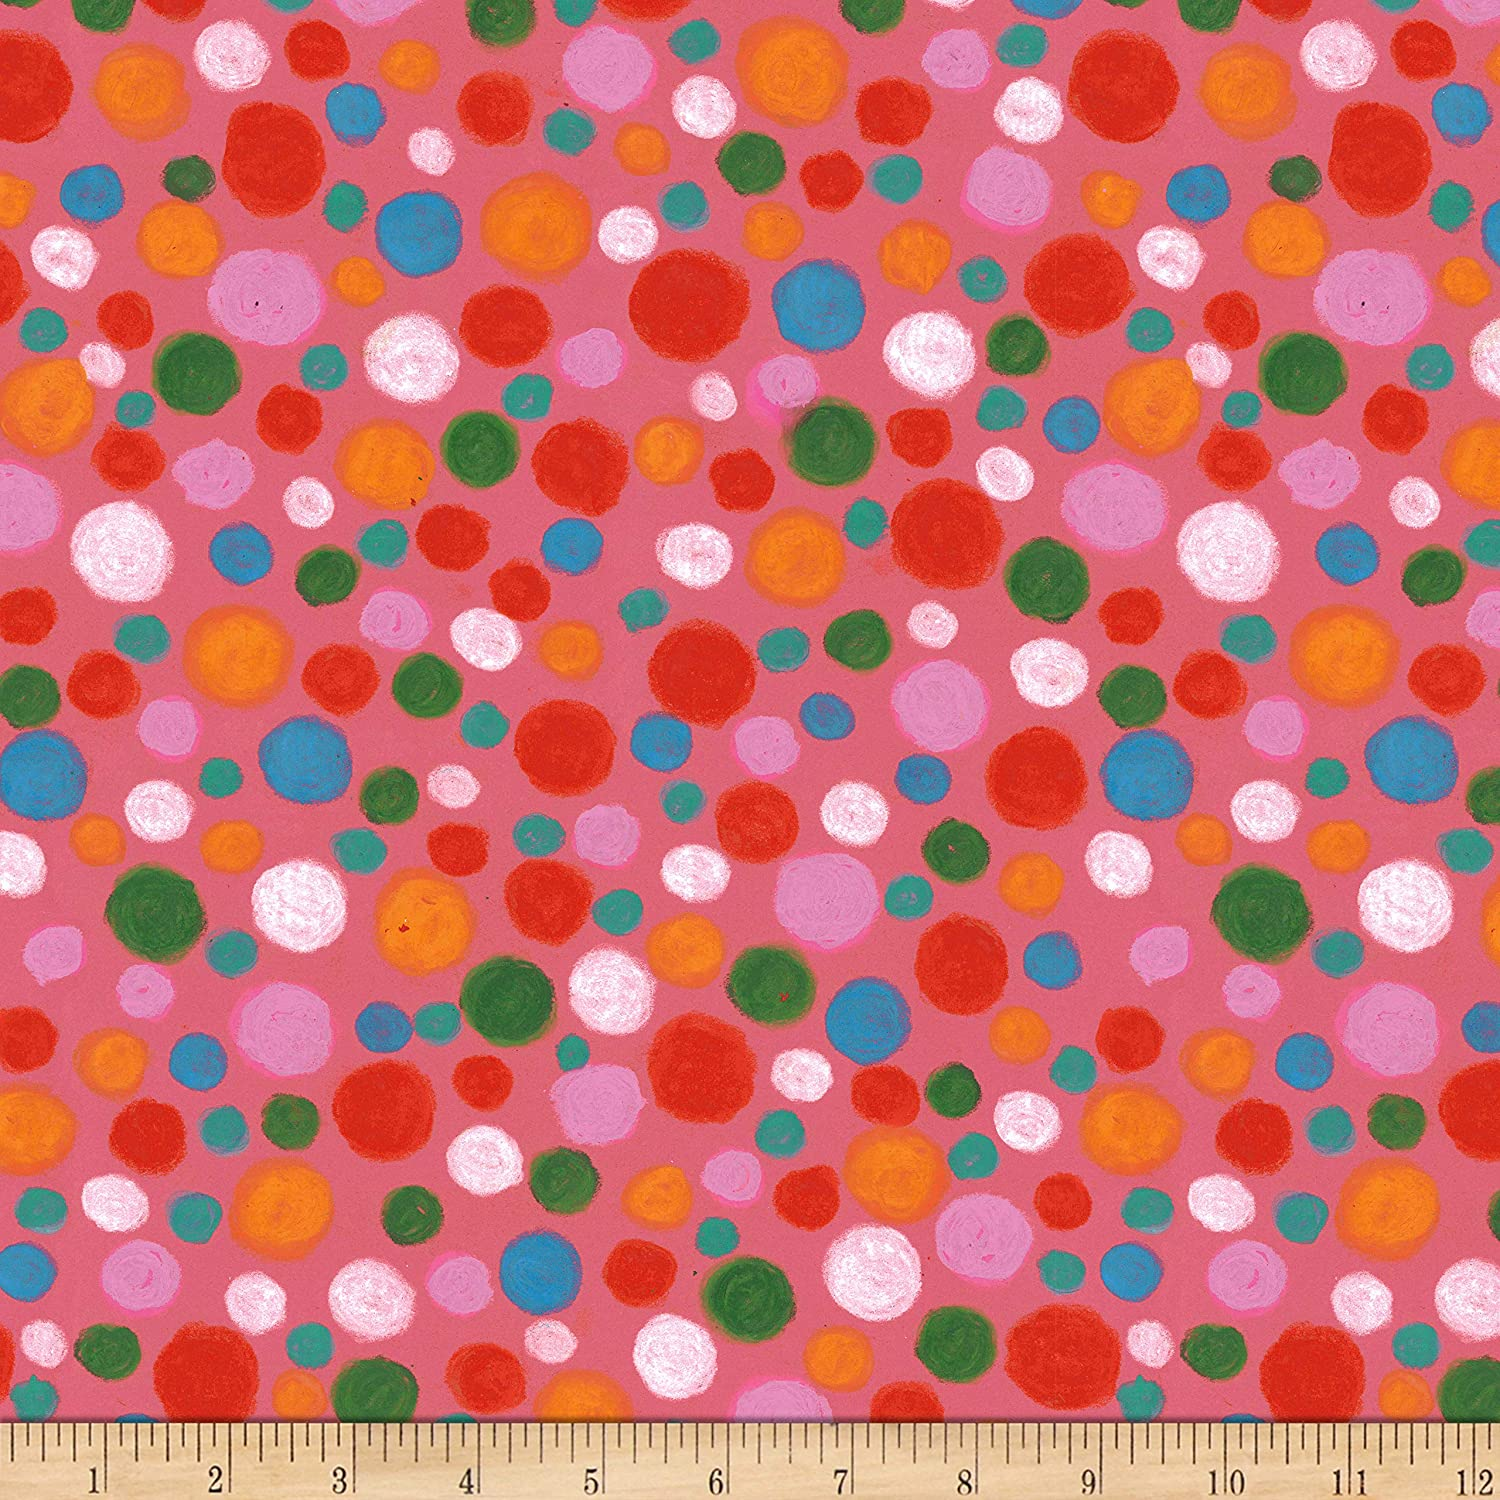 4 12 Yards of Vintage Pink and White Mottled Print Cotton Fabric